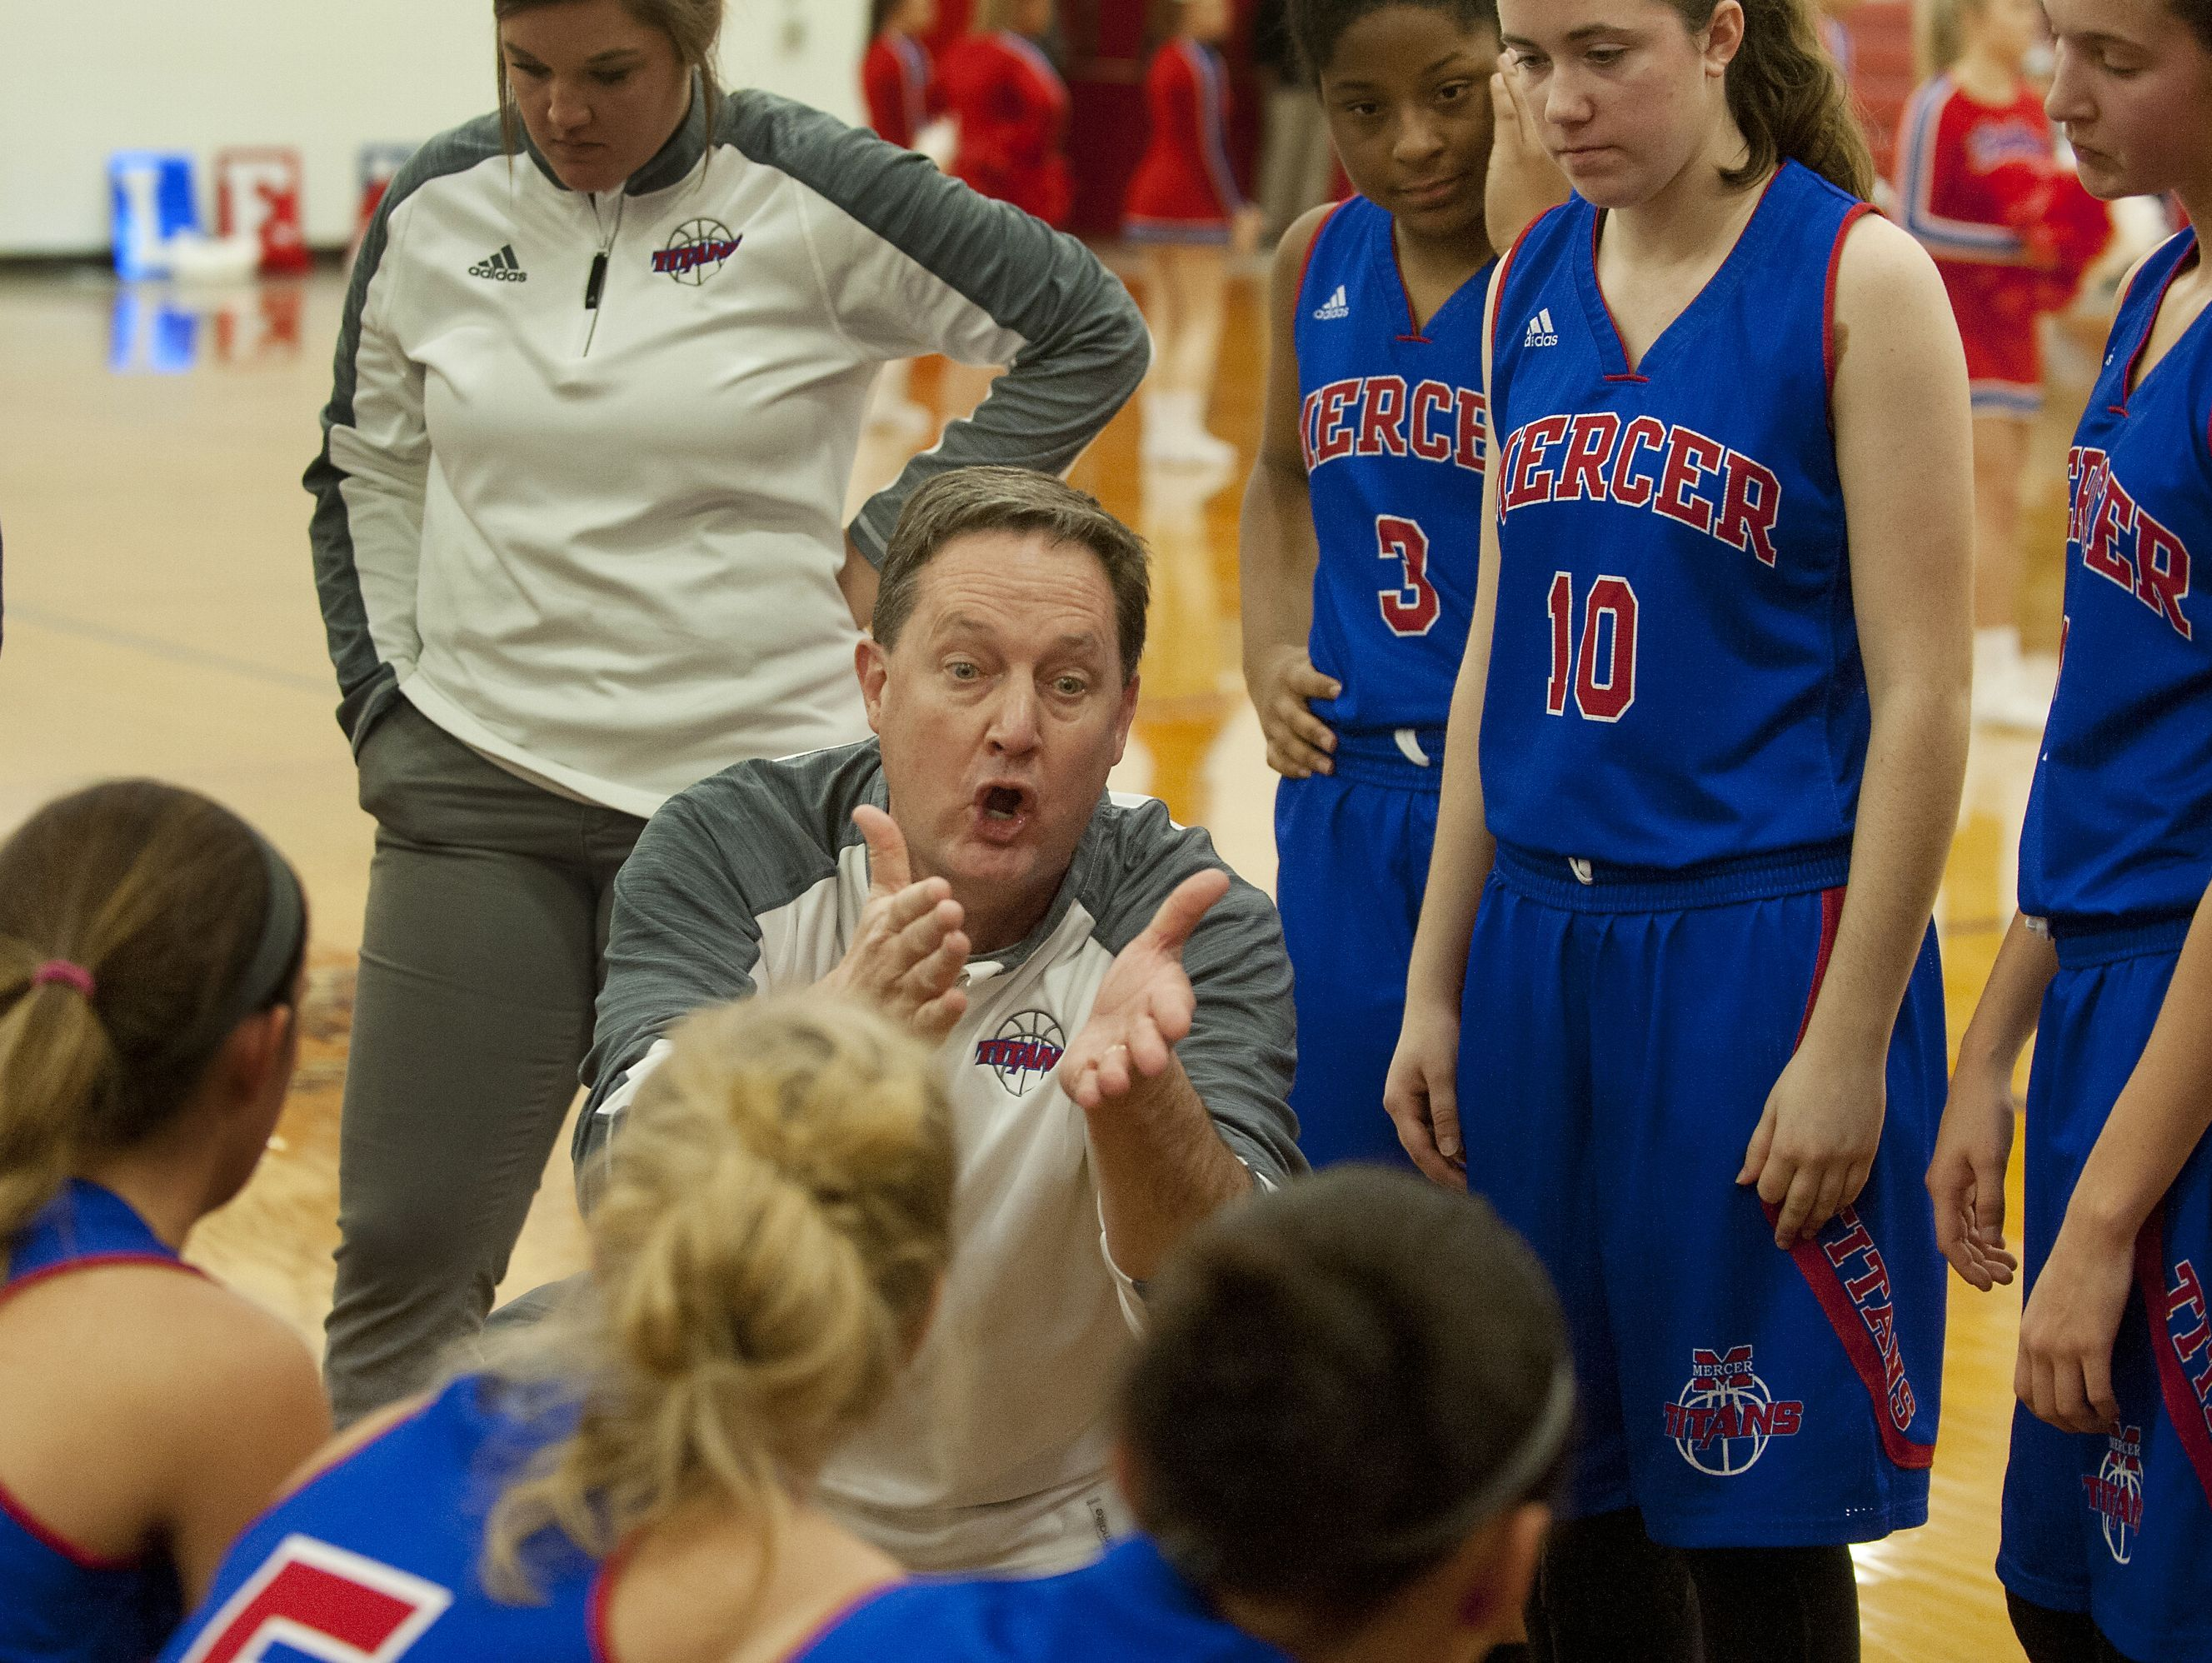 Mercer County head basketball coach Chris G. Souder makes a strong point to his players during a time-out. 07 January 2017